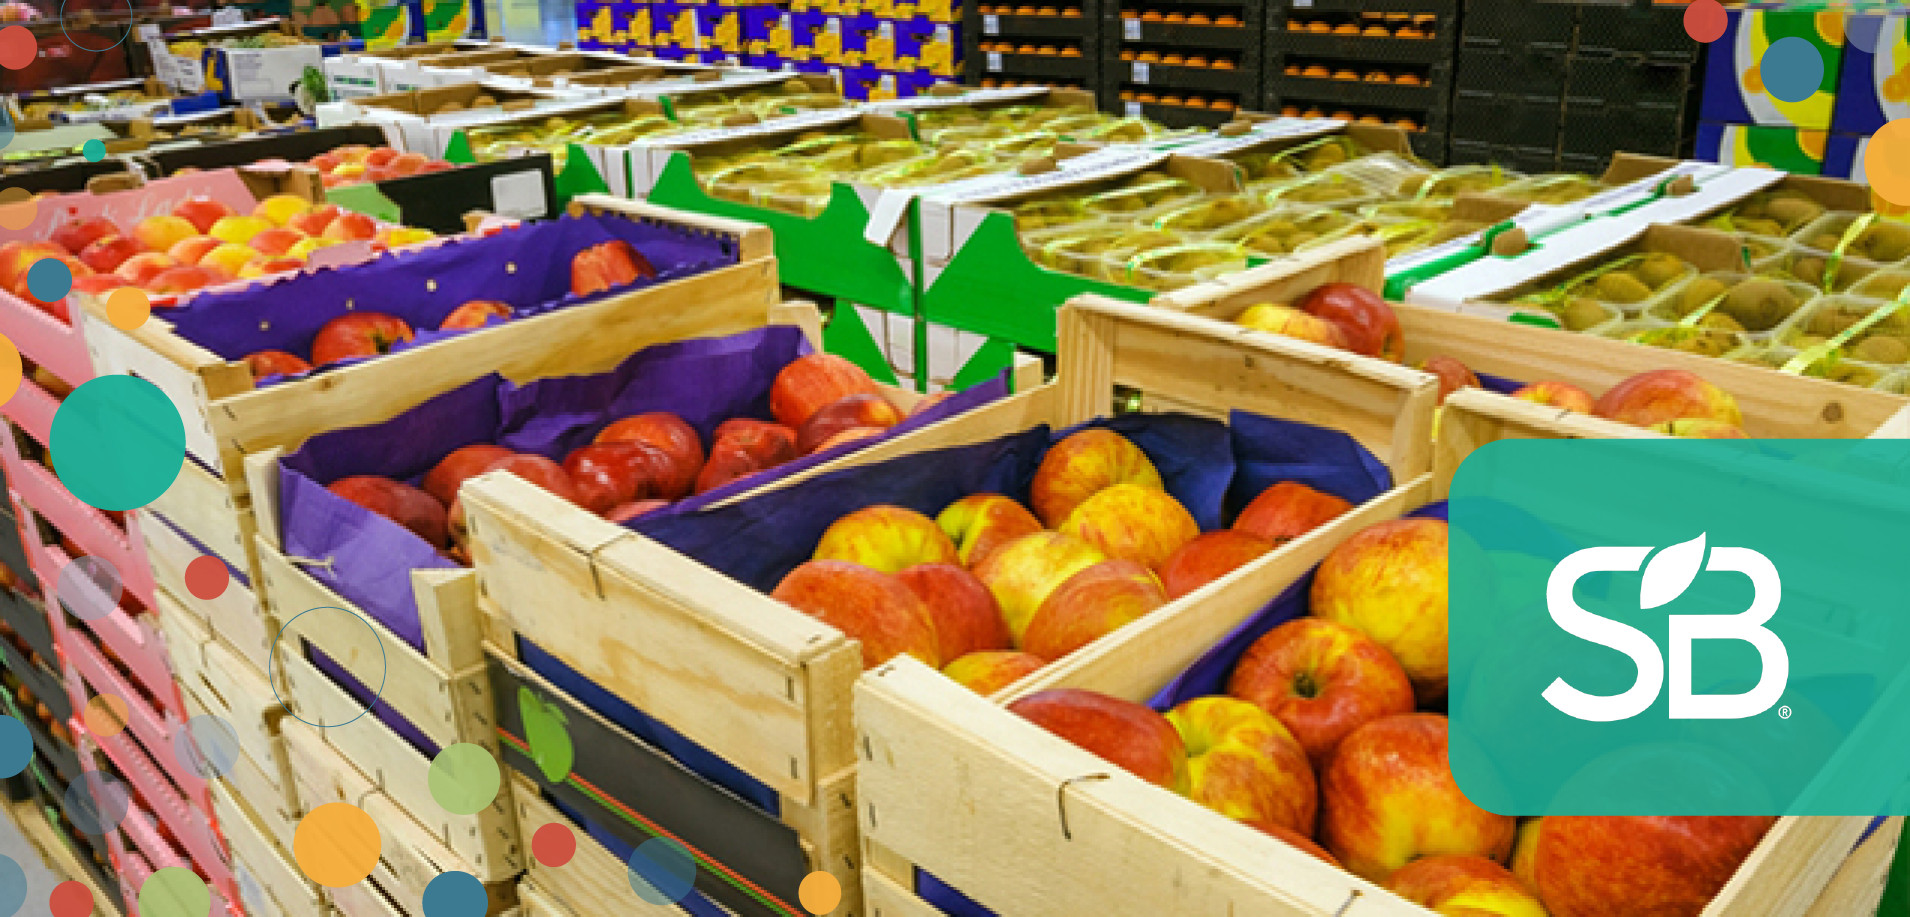 Real-Time Visibility Key to Reducing Food Waste in the Supply Chain